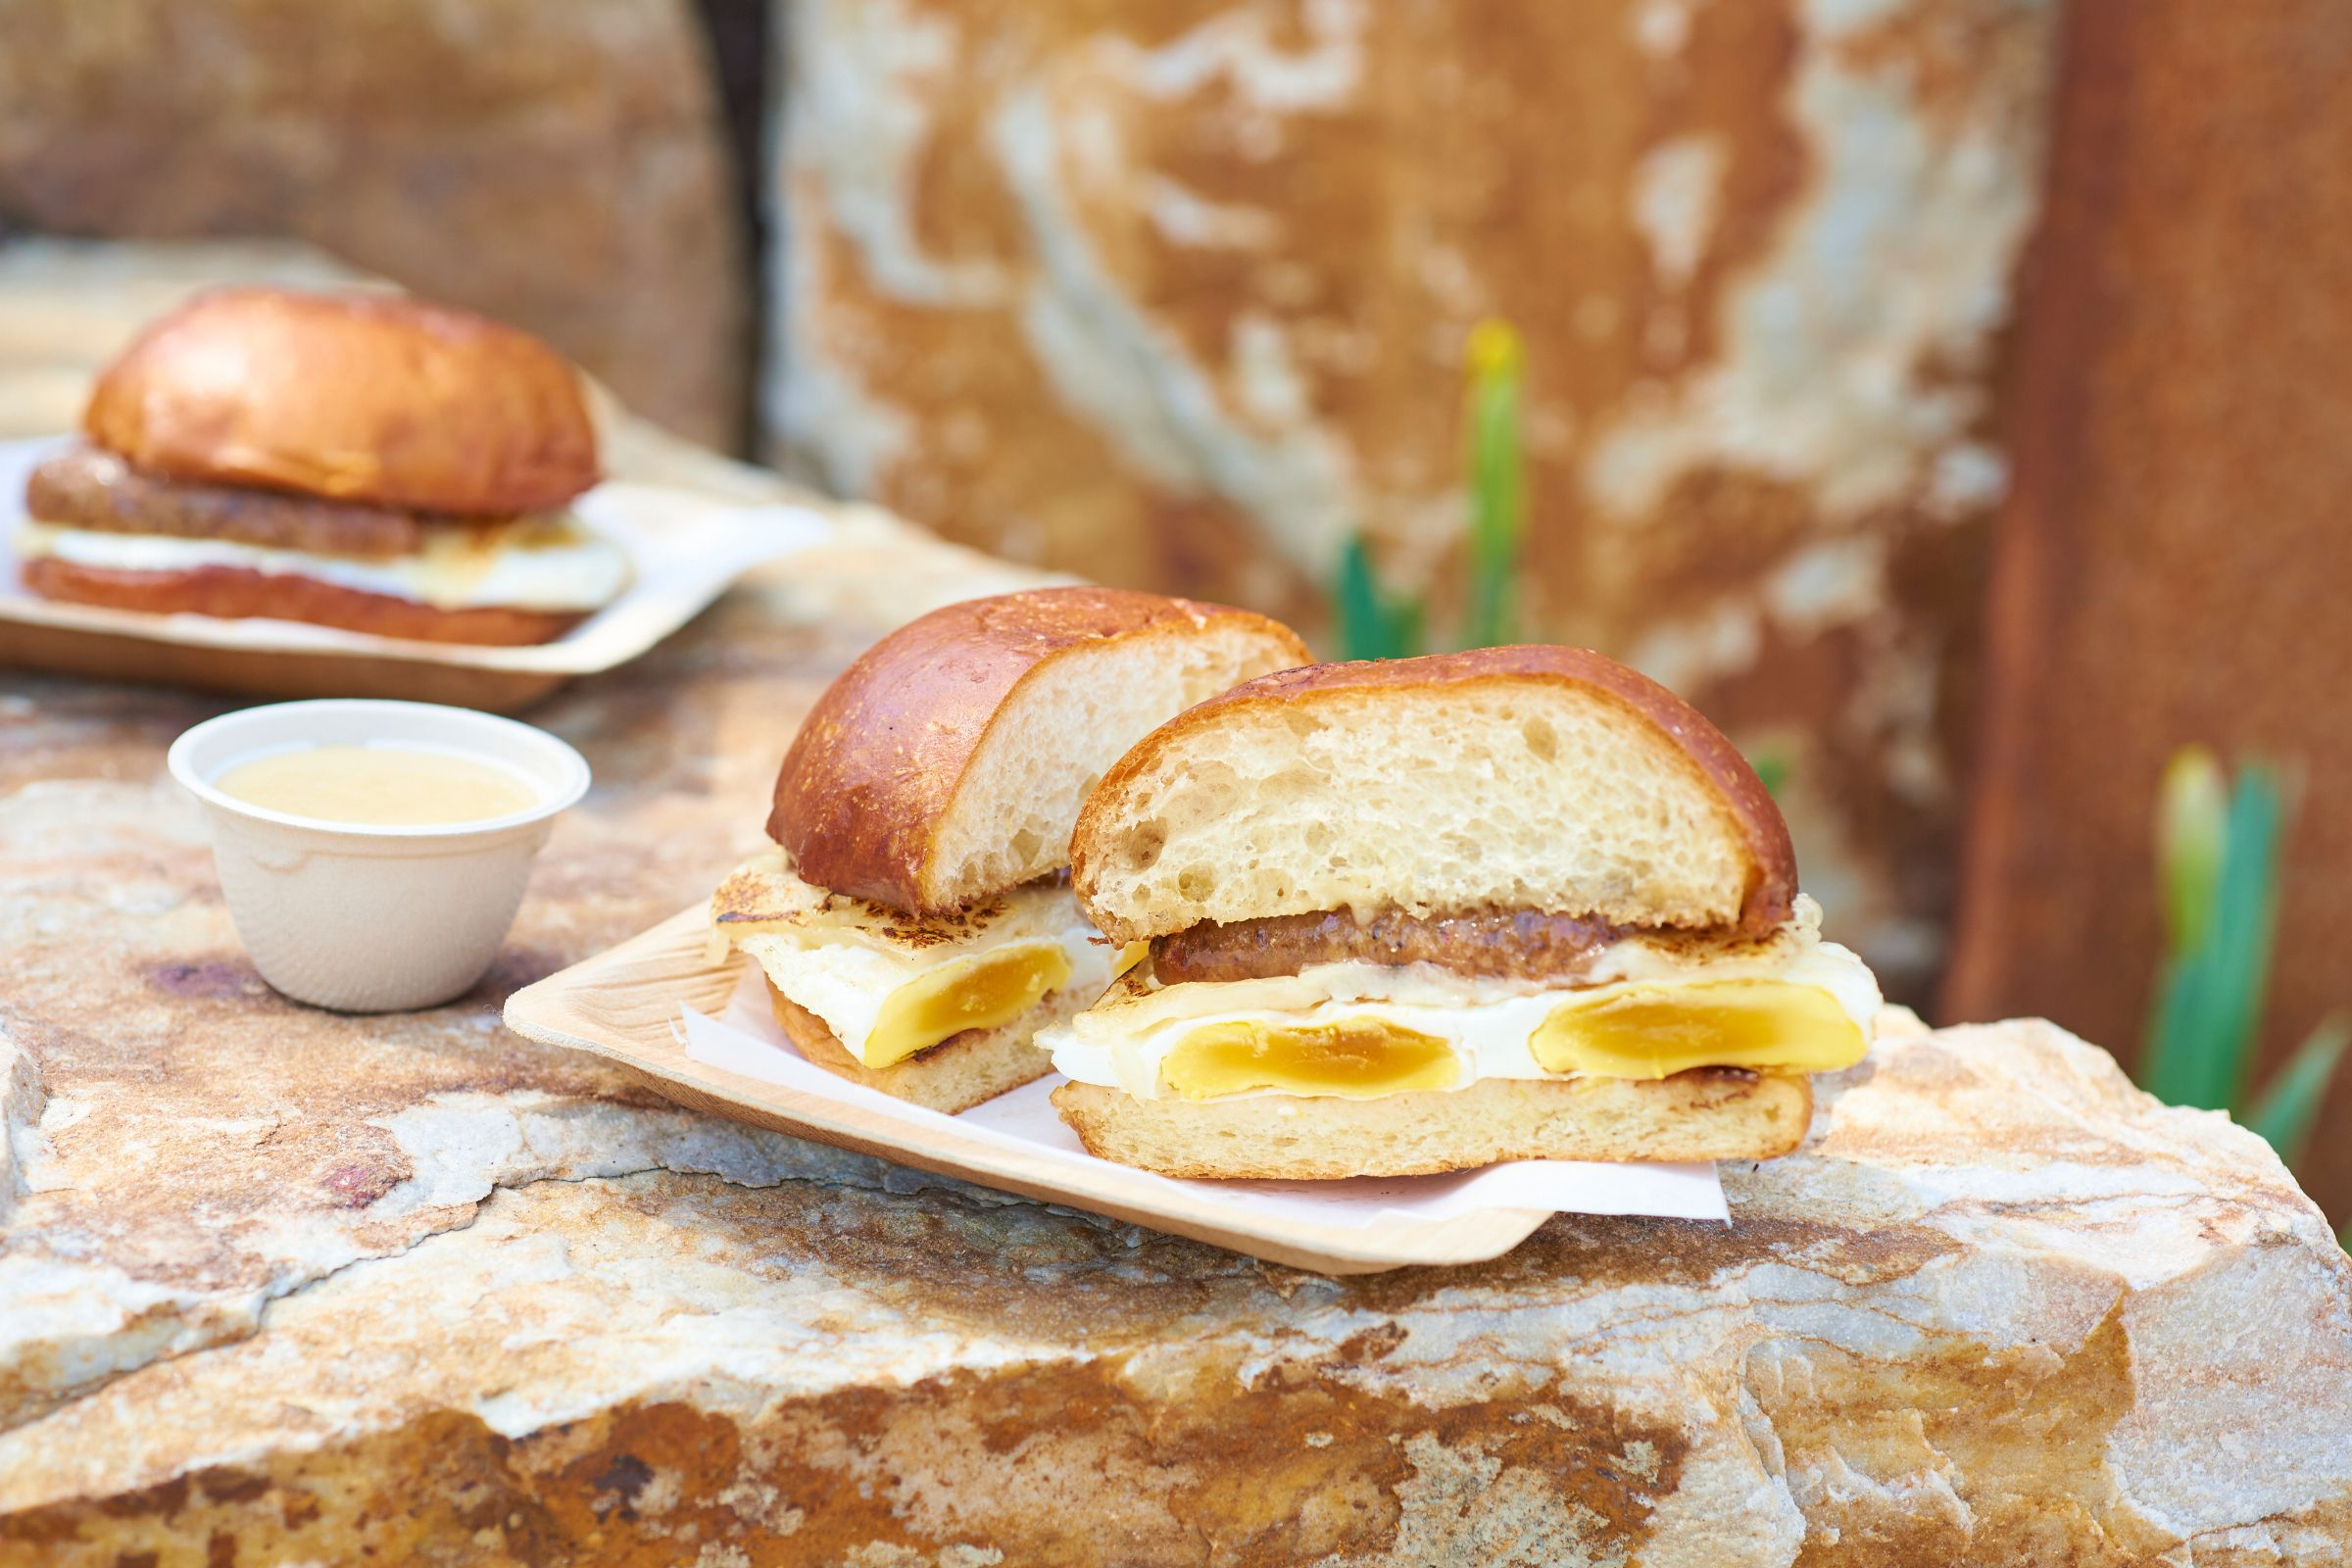 A sandwich with meat and eggs sits on a plate that's sitting on a rock